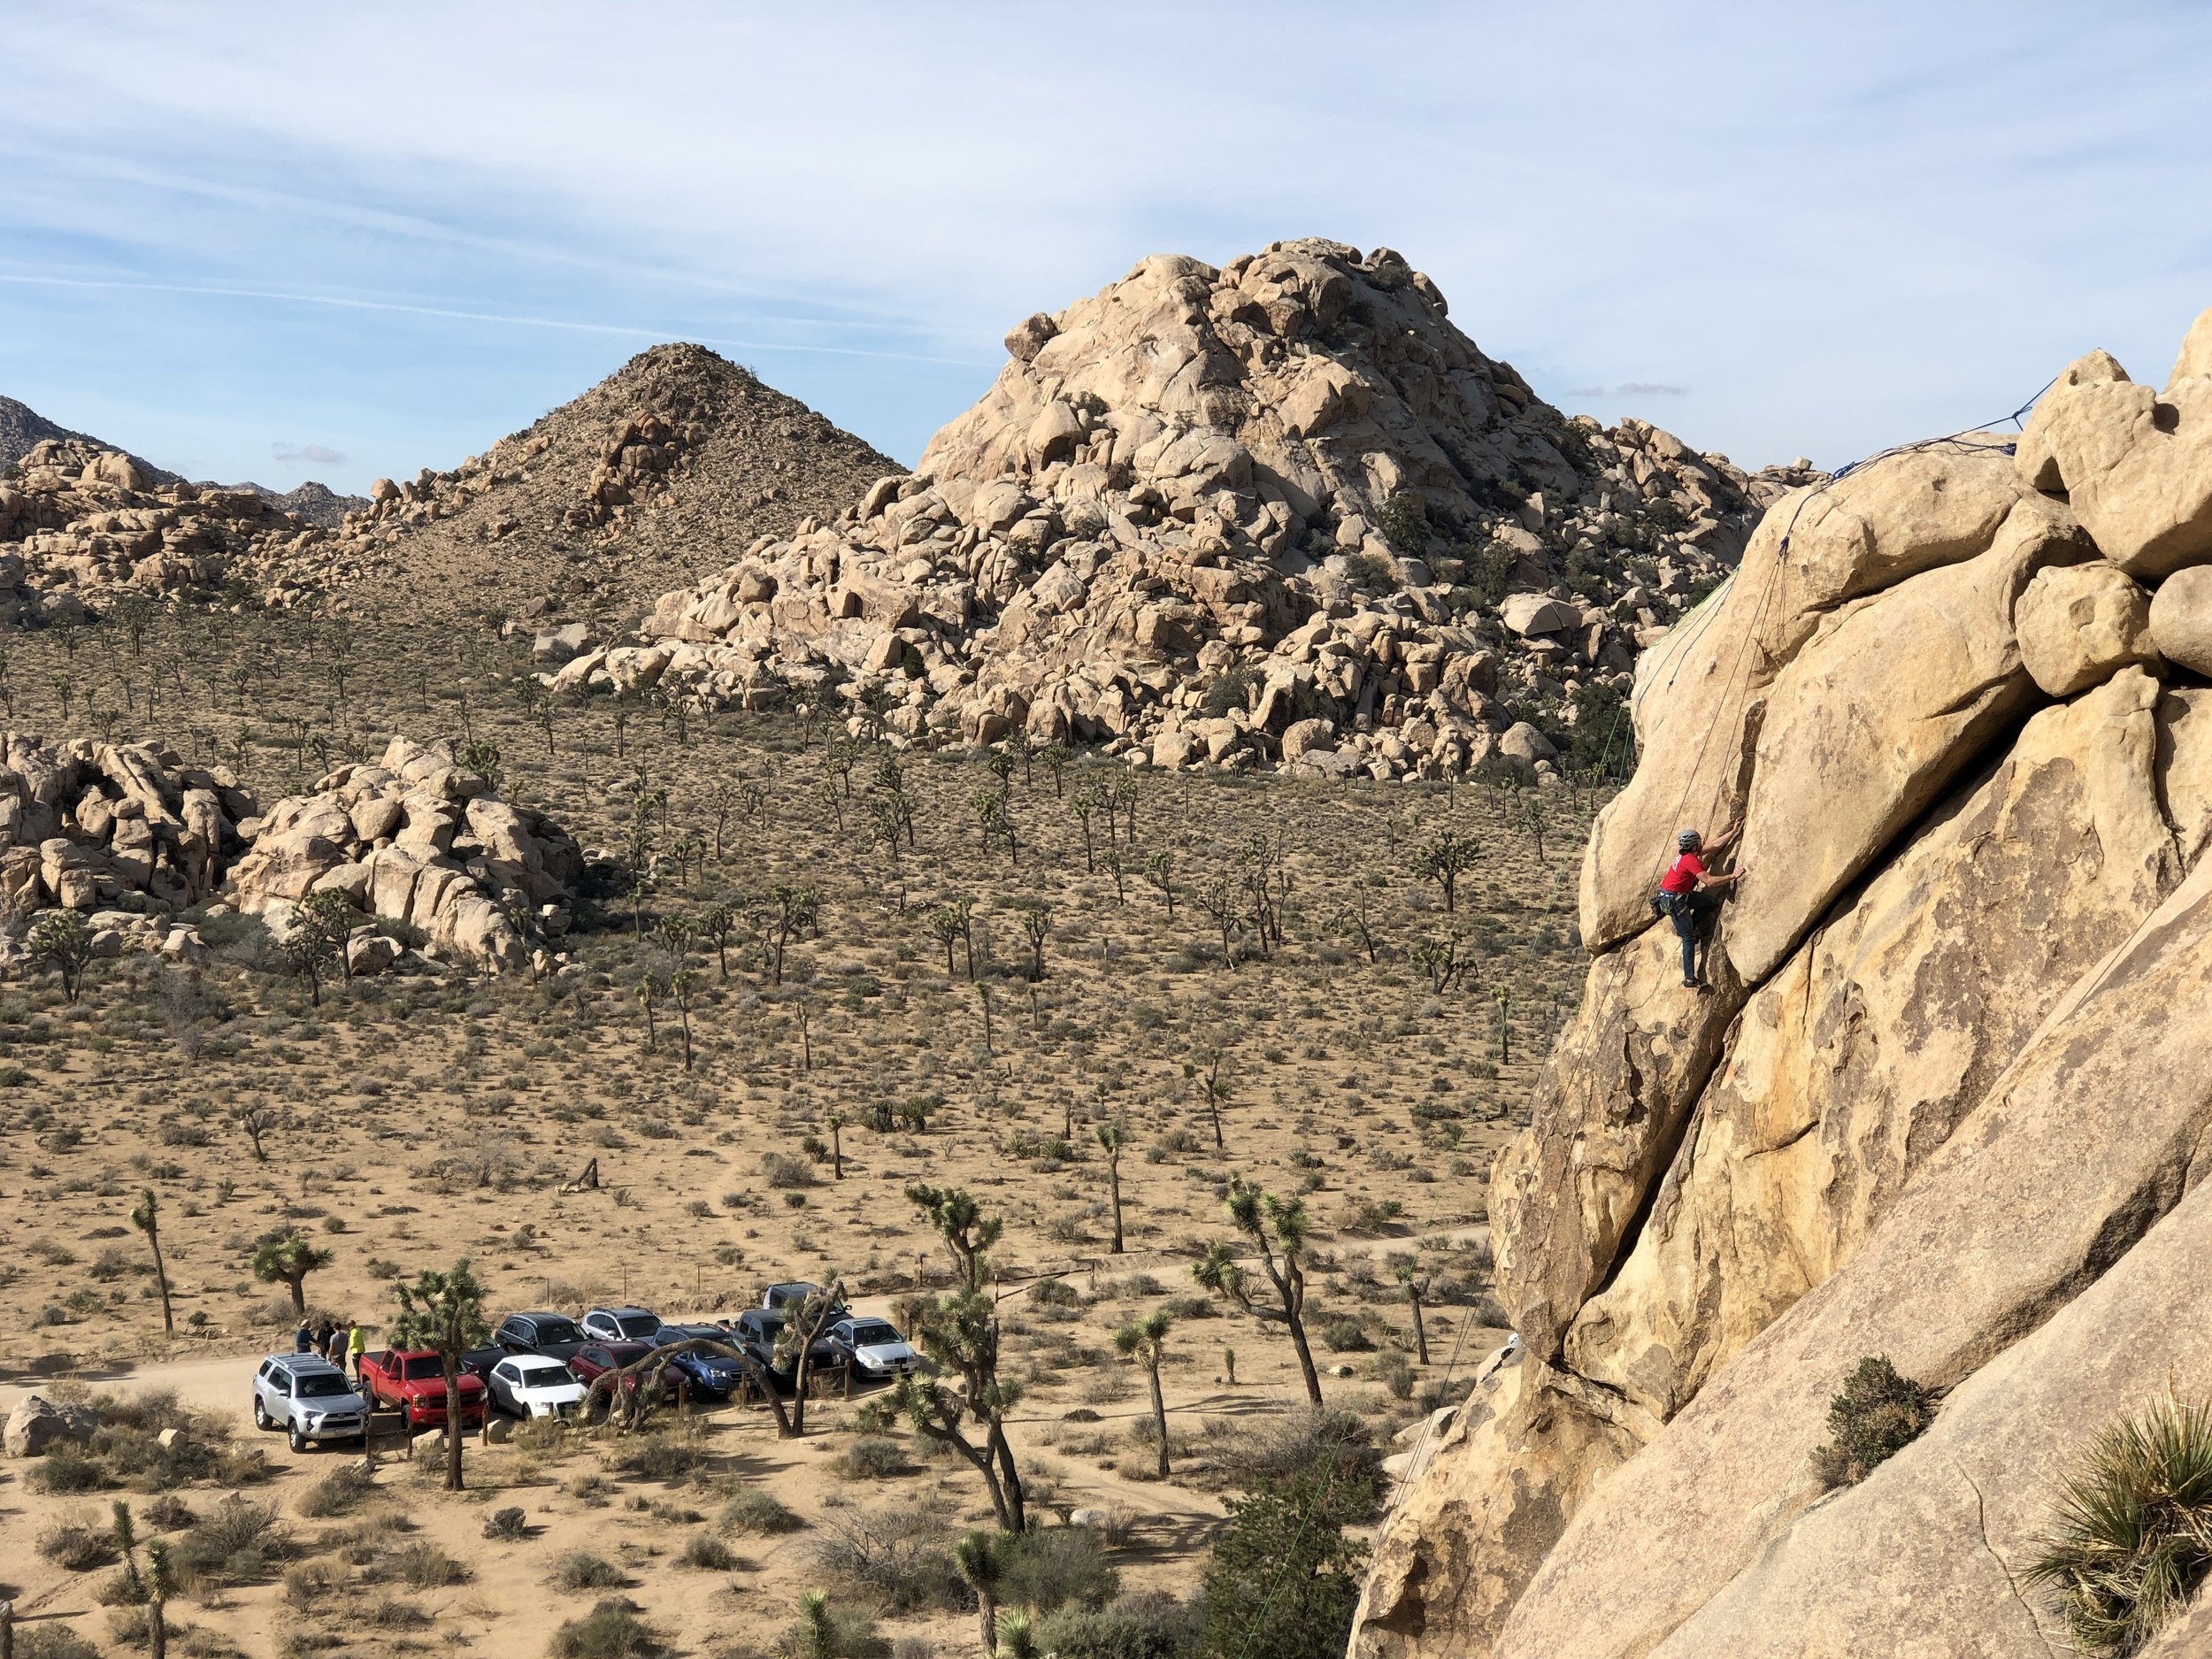 BBQ's x BELAY's x BEER's Joshua Tree National Park Rock Climbing